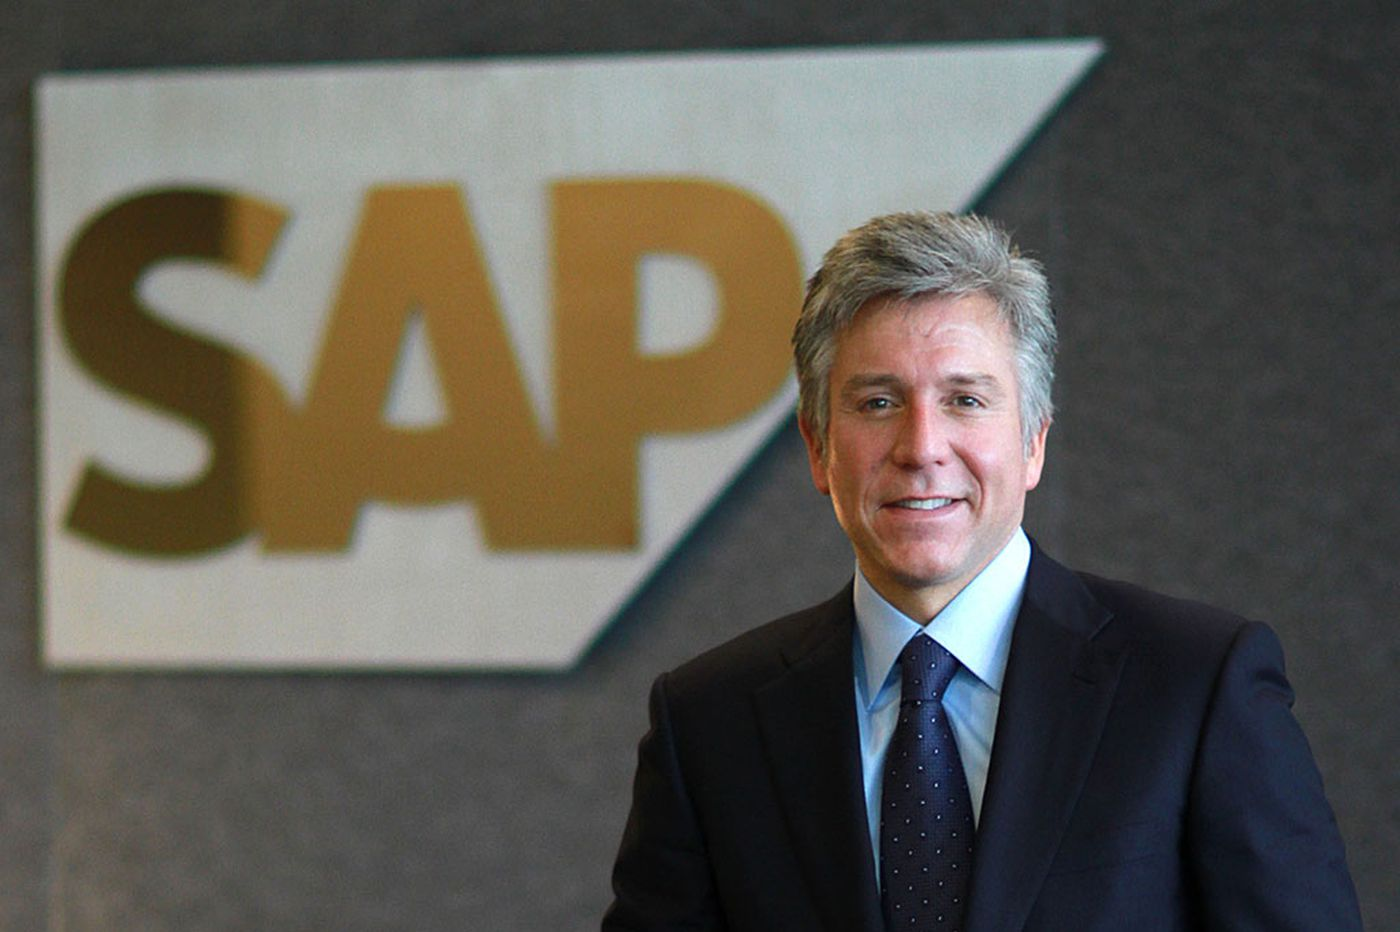 SAP CEO is telling a winner's story